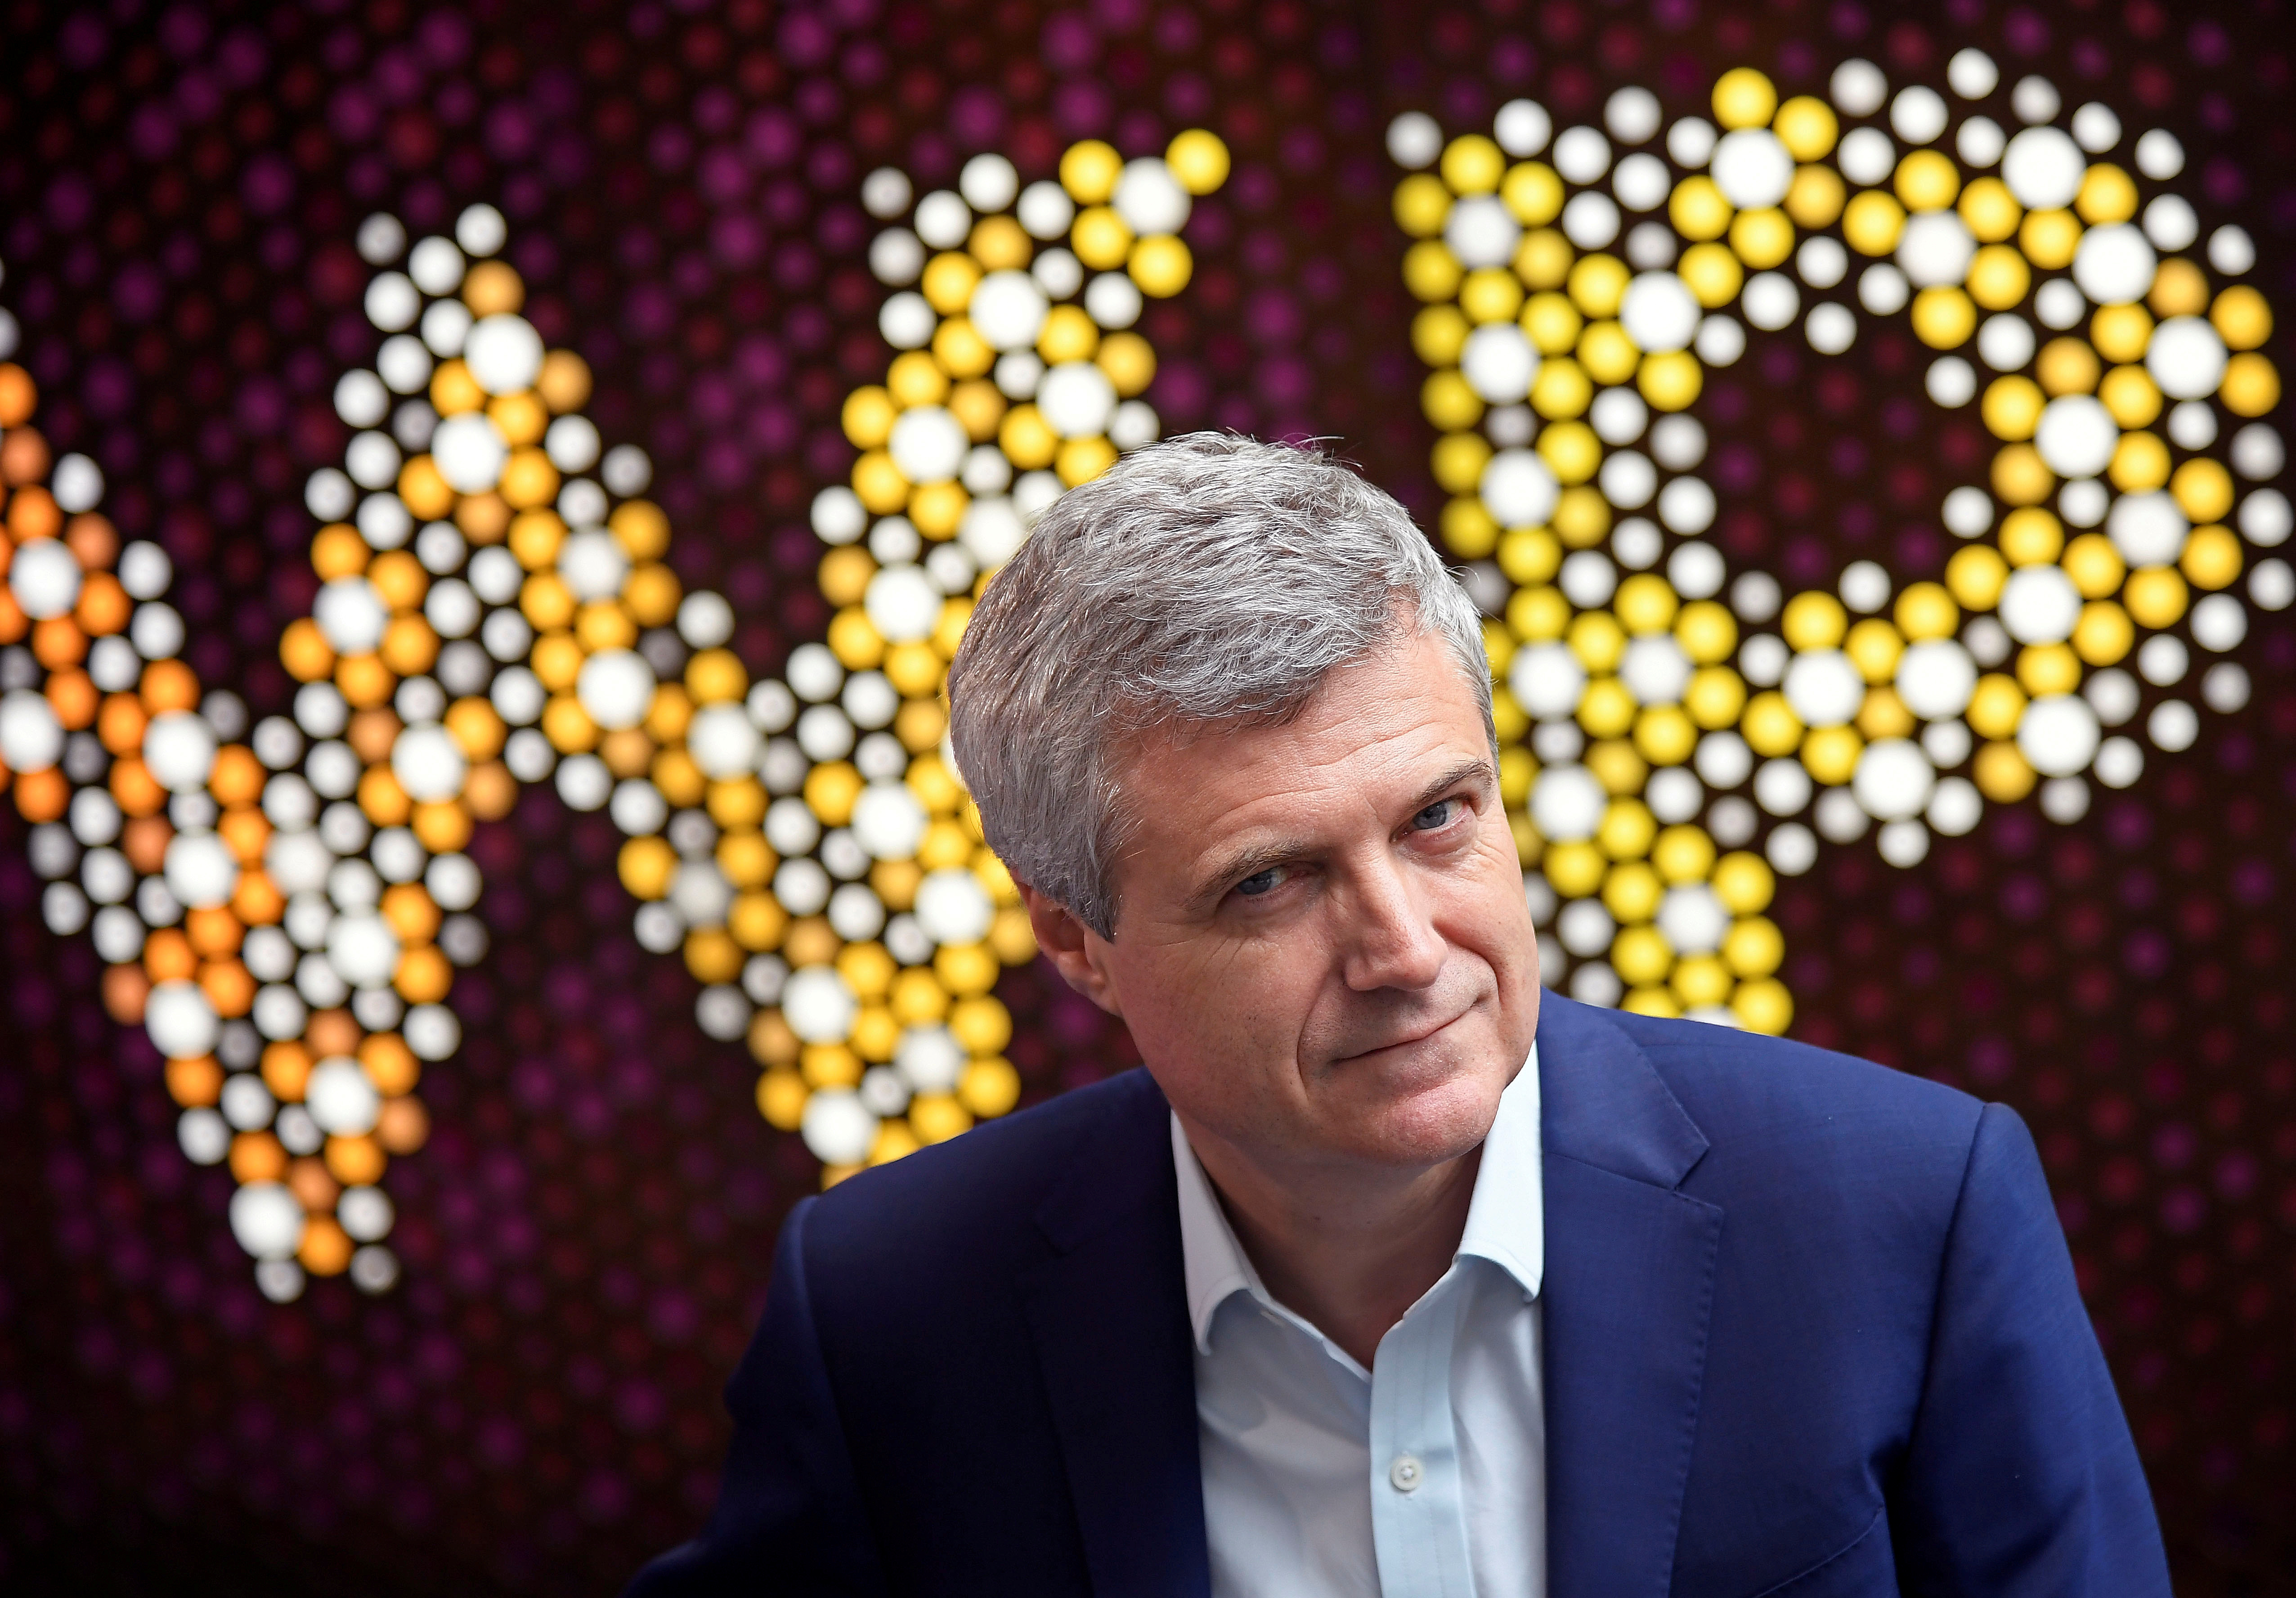 Mark Read, CEO of WPP, the largest global advertising and public relations agency, poses for a portrait at their offices in London, Britain, July 17, 2019. REUTERS/Toby Melville